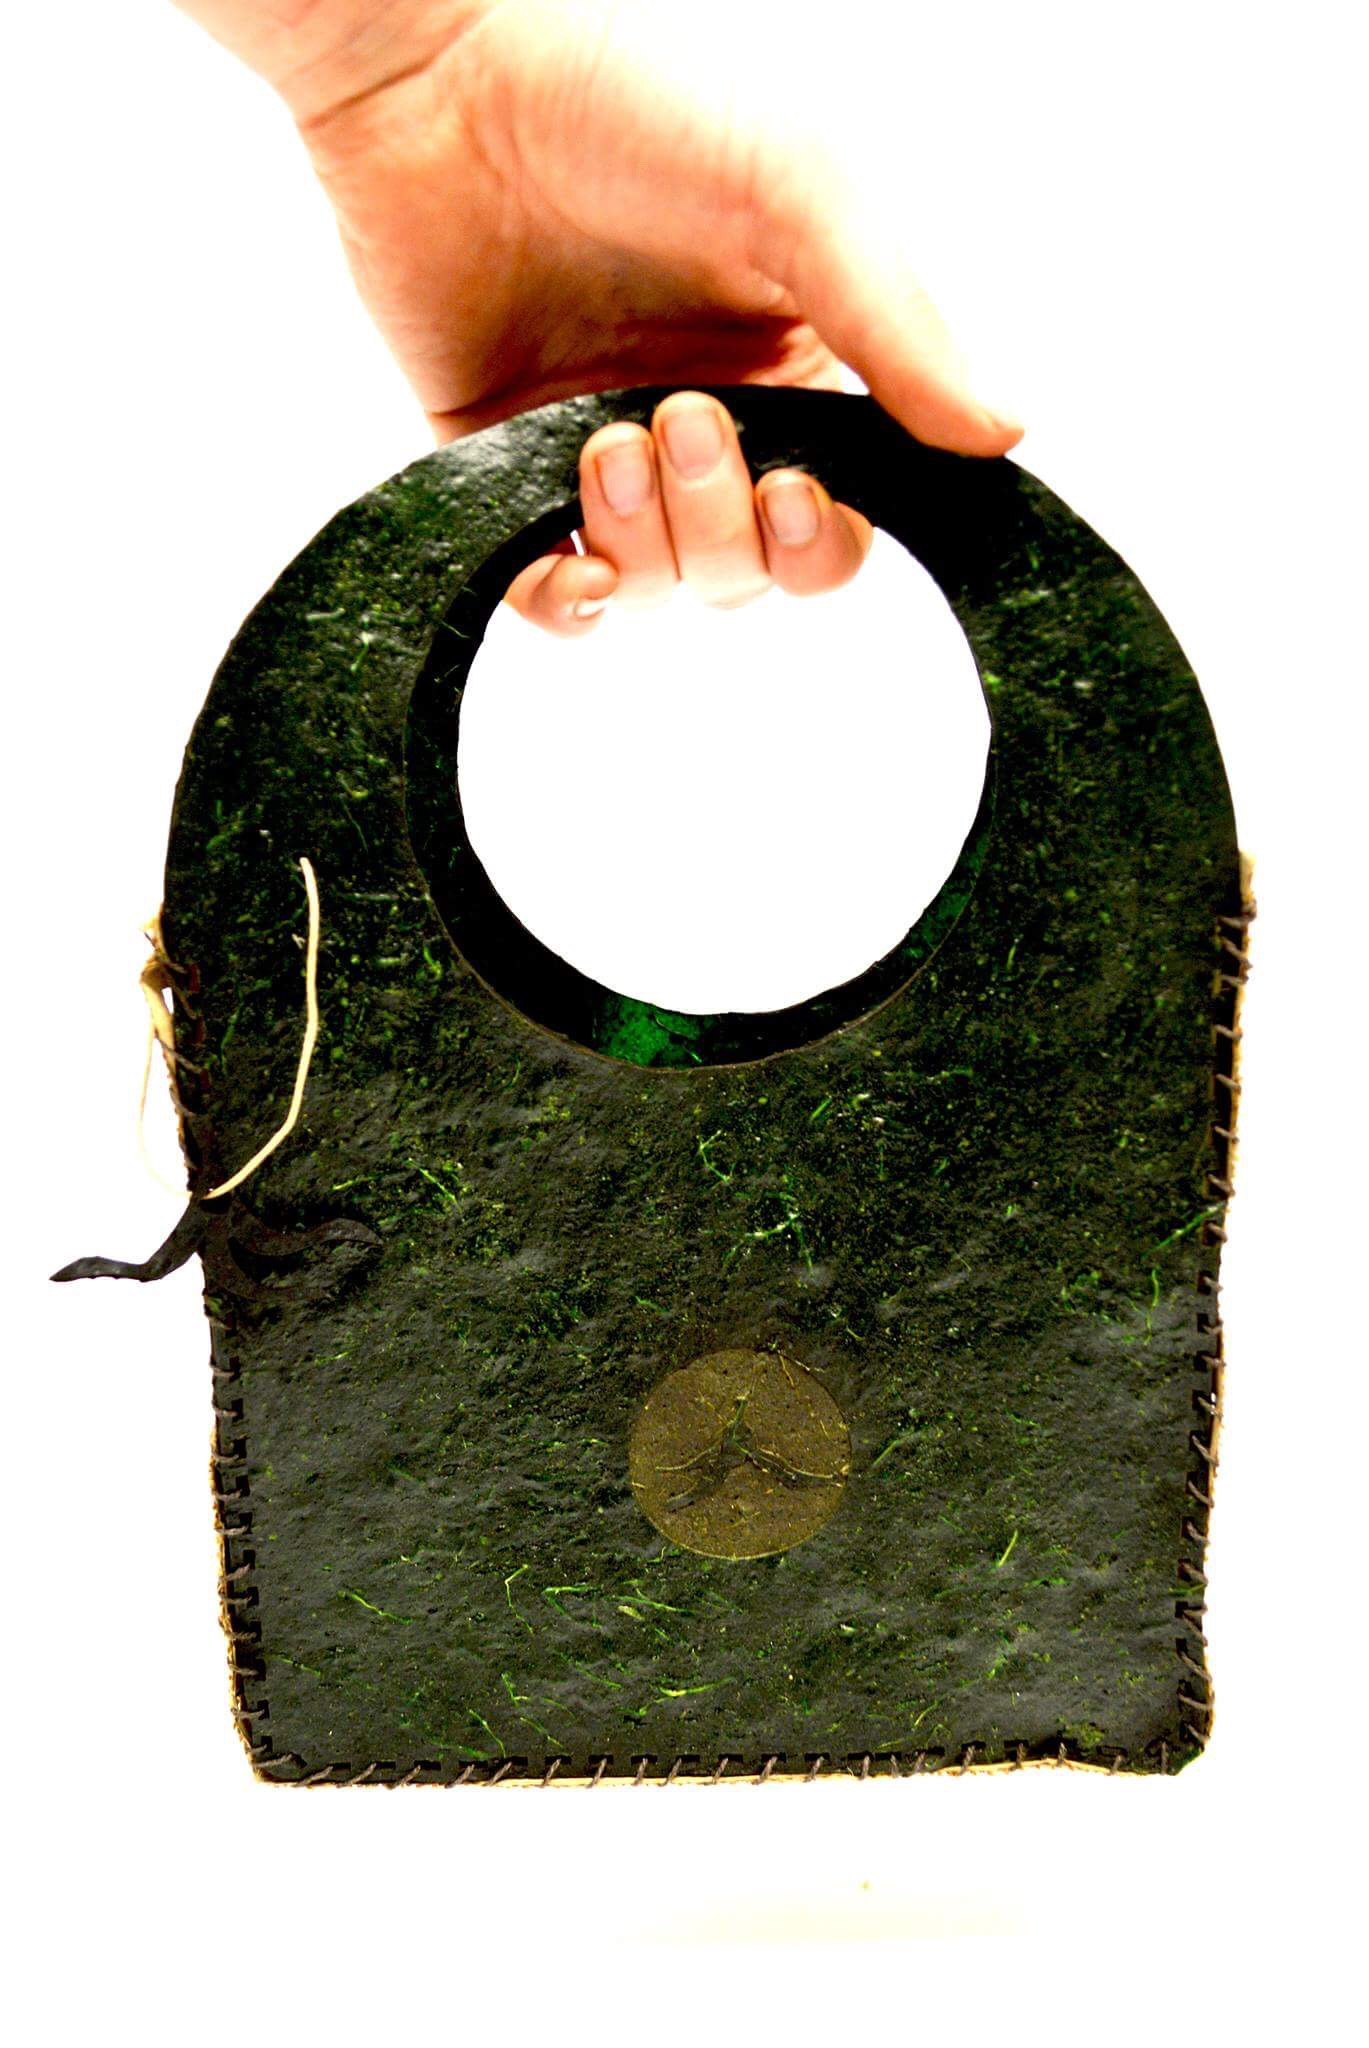 A bag created from Biomaterial produced by designer Lizzie Hall, as part of  Banana Lab